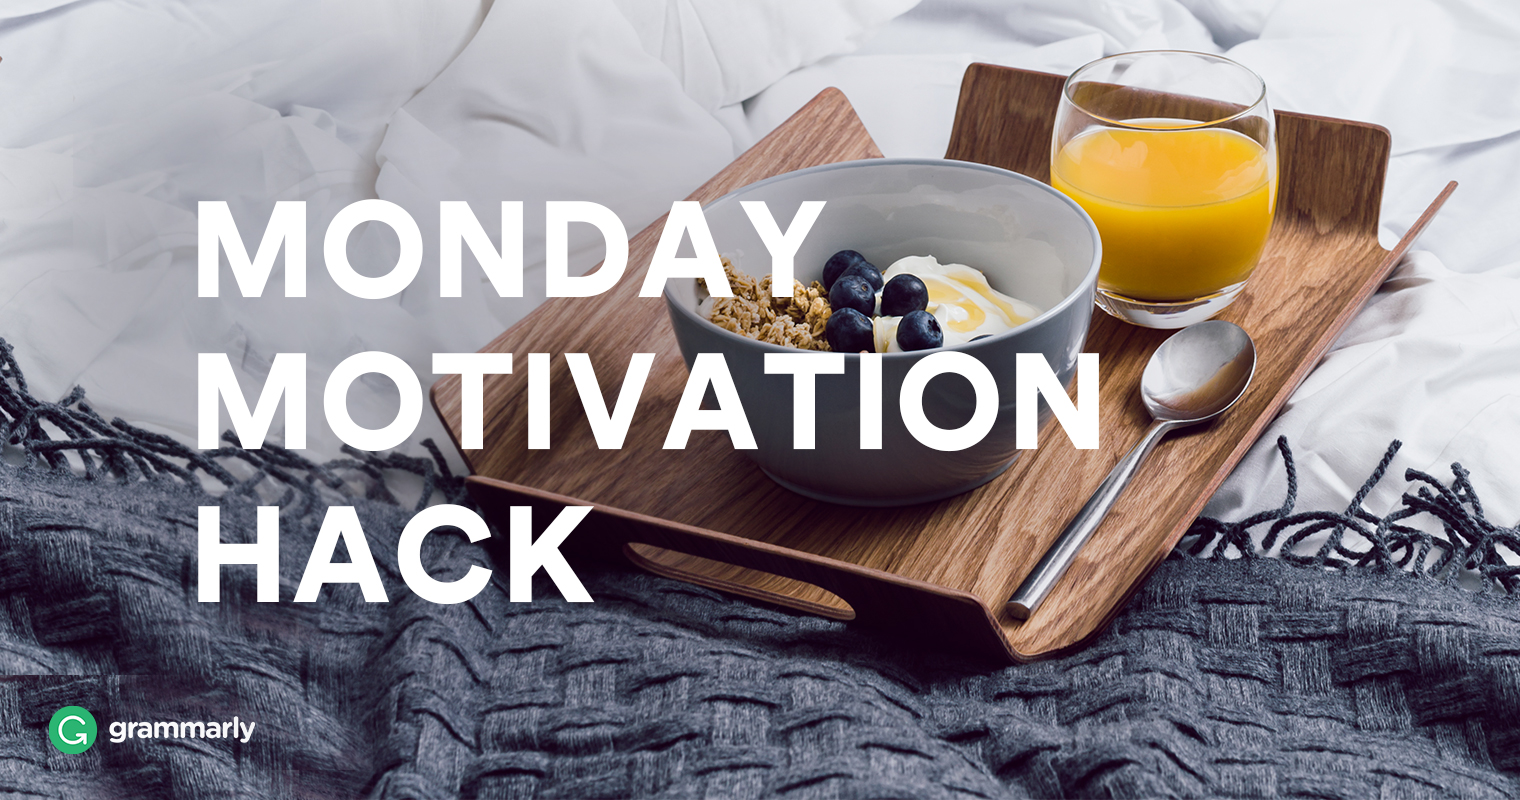 Monday Motivation Hack: Manage Your Morning